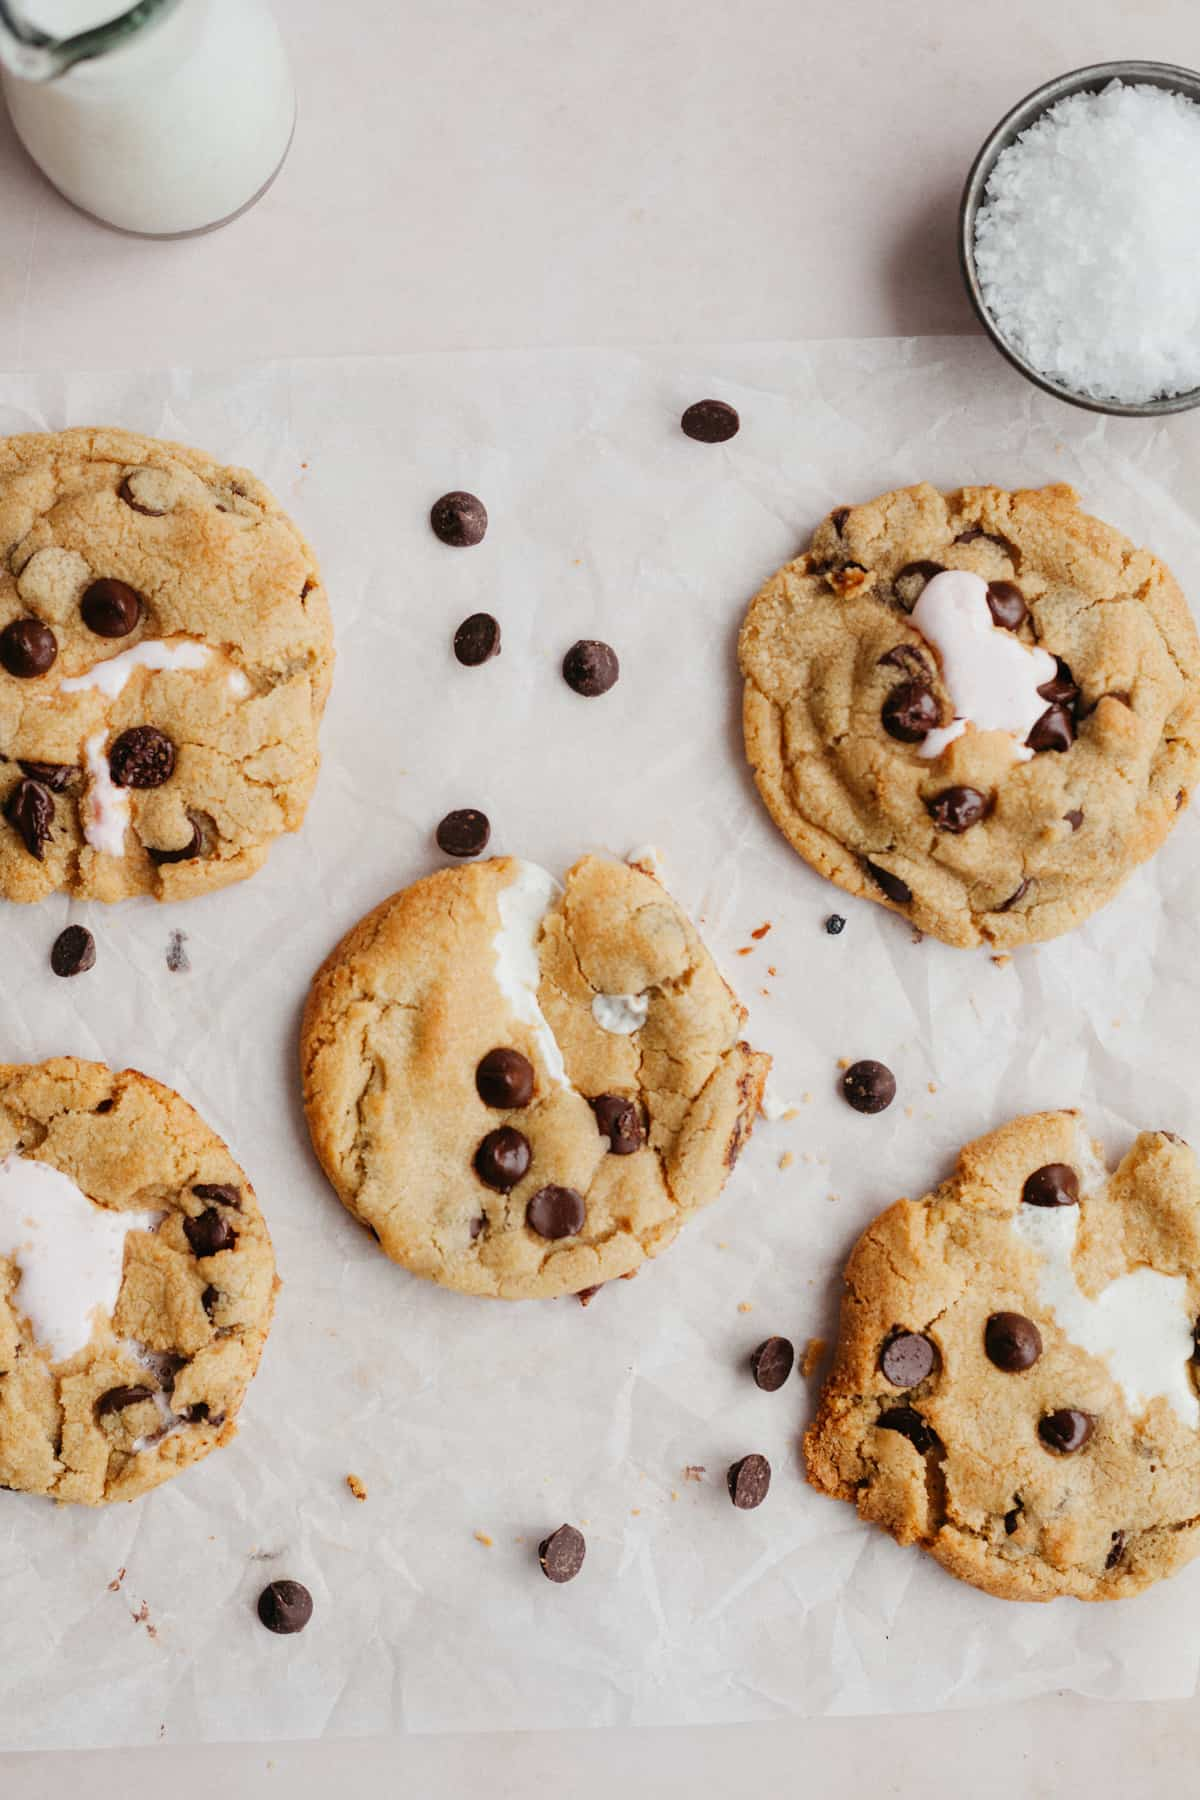 Five marshmallow chocolate chip cookies on parchment paper with some chocolate chips scattered around and a small bottle of milk